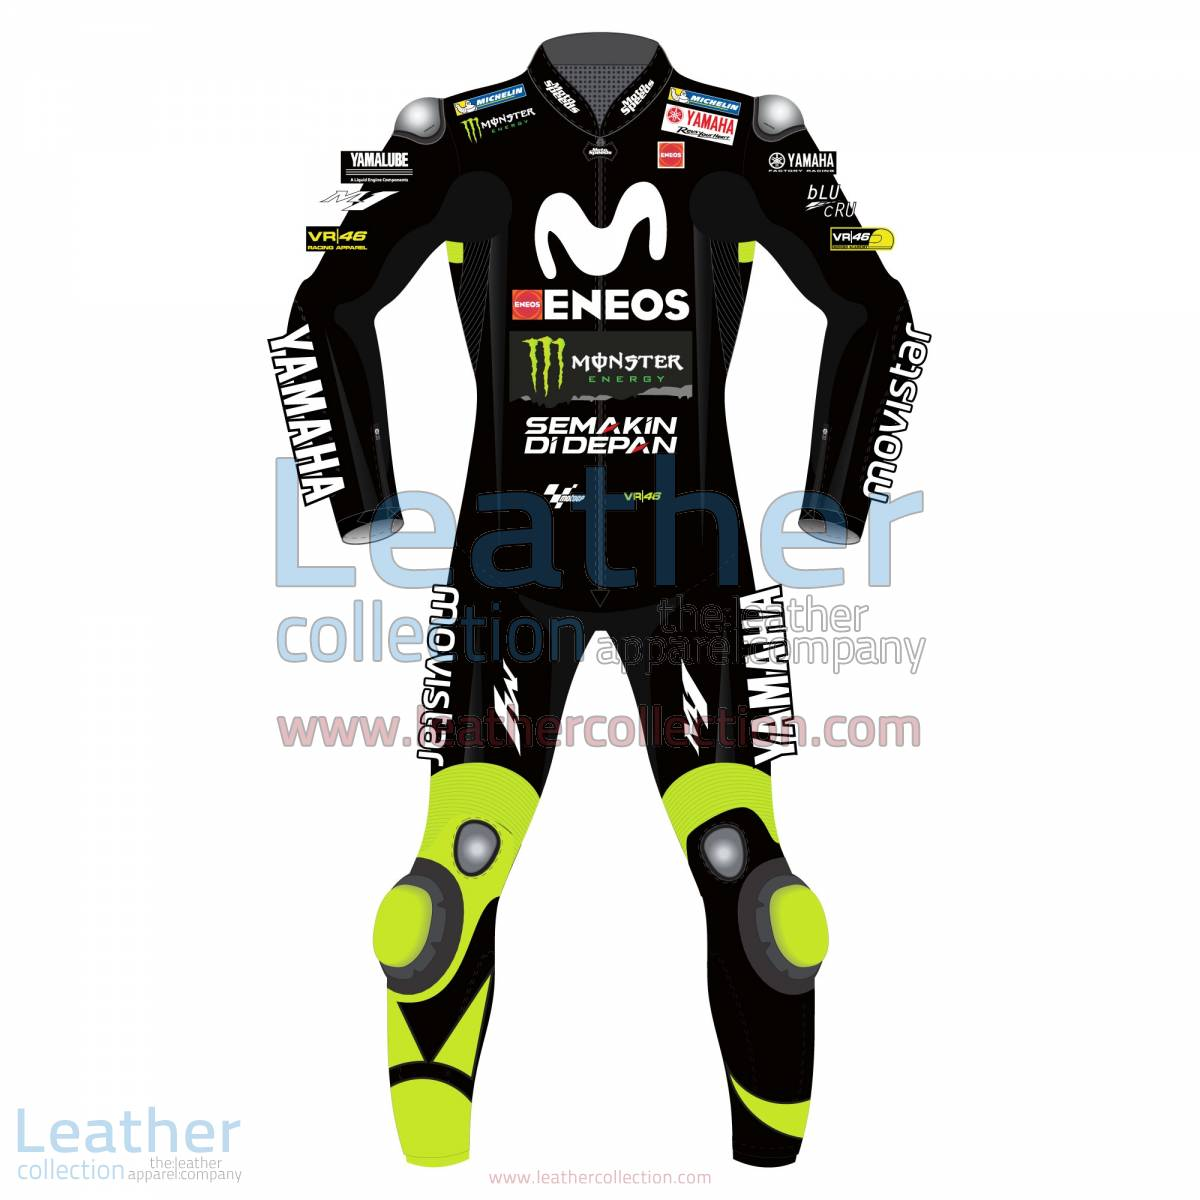 Valentino Rossi Movistar Yamaha 2018 Suit in Black | valentino rossi suit